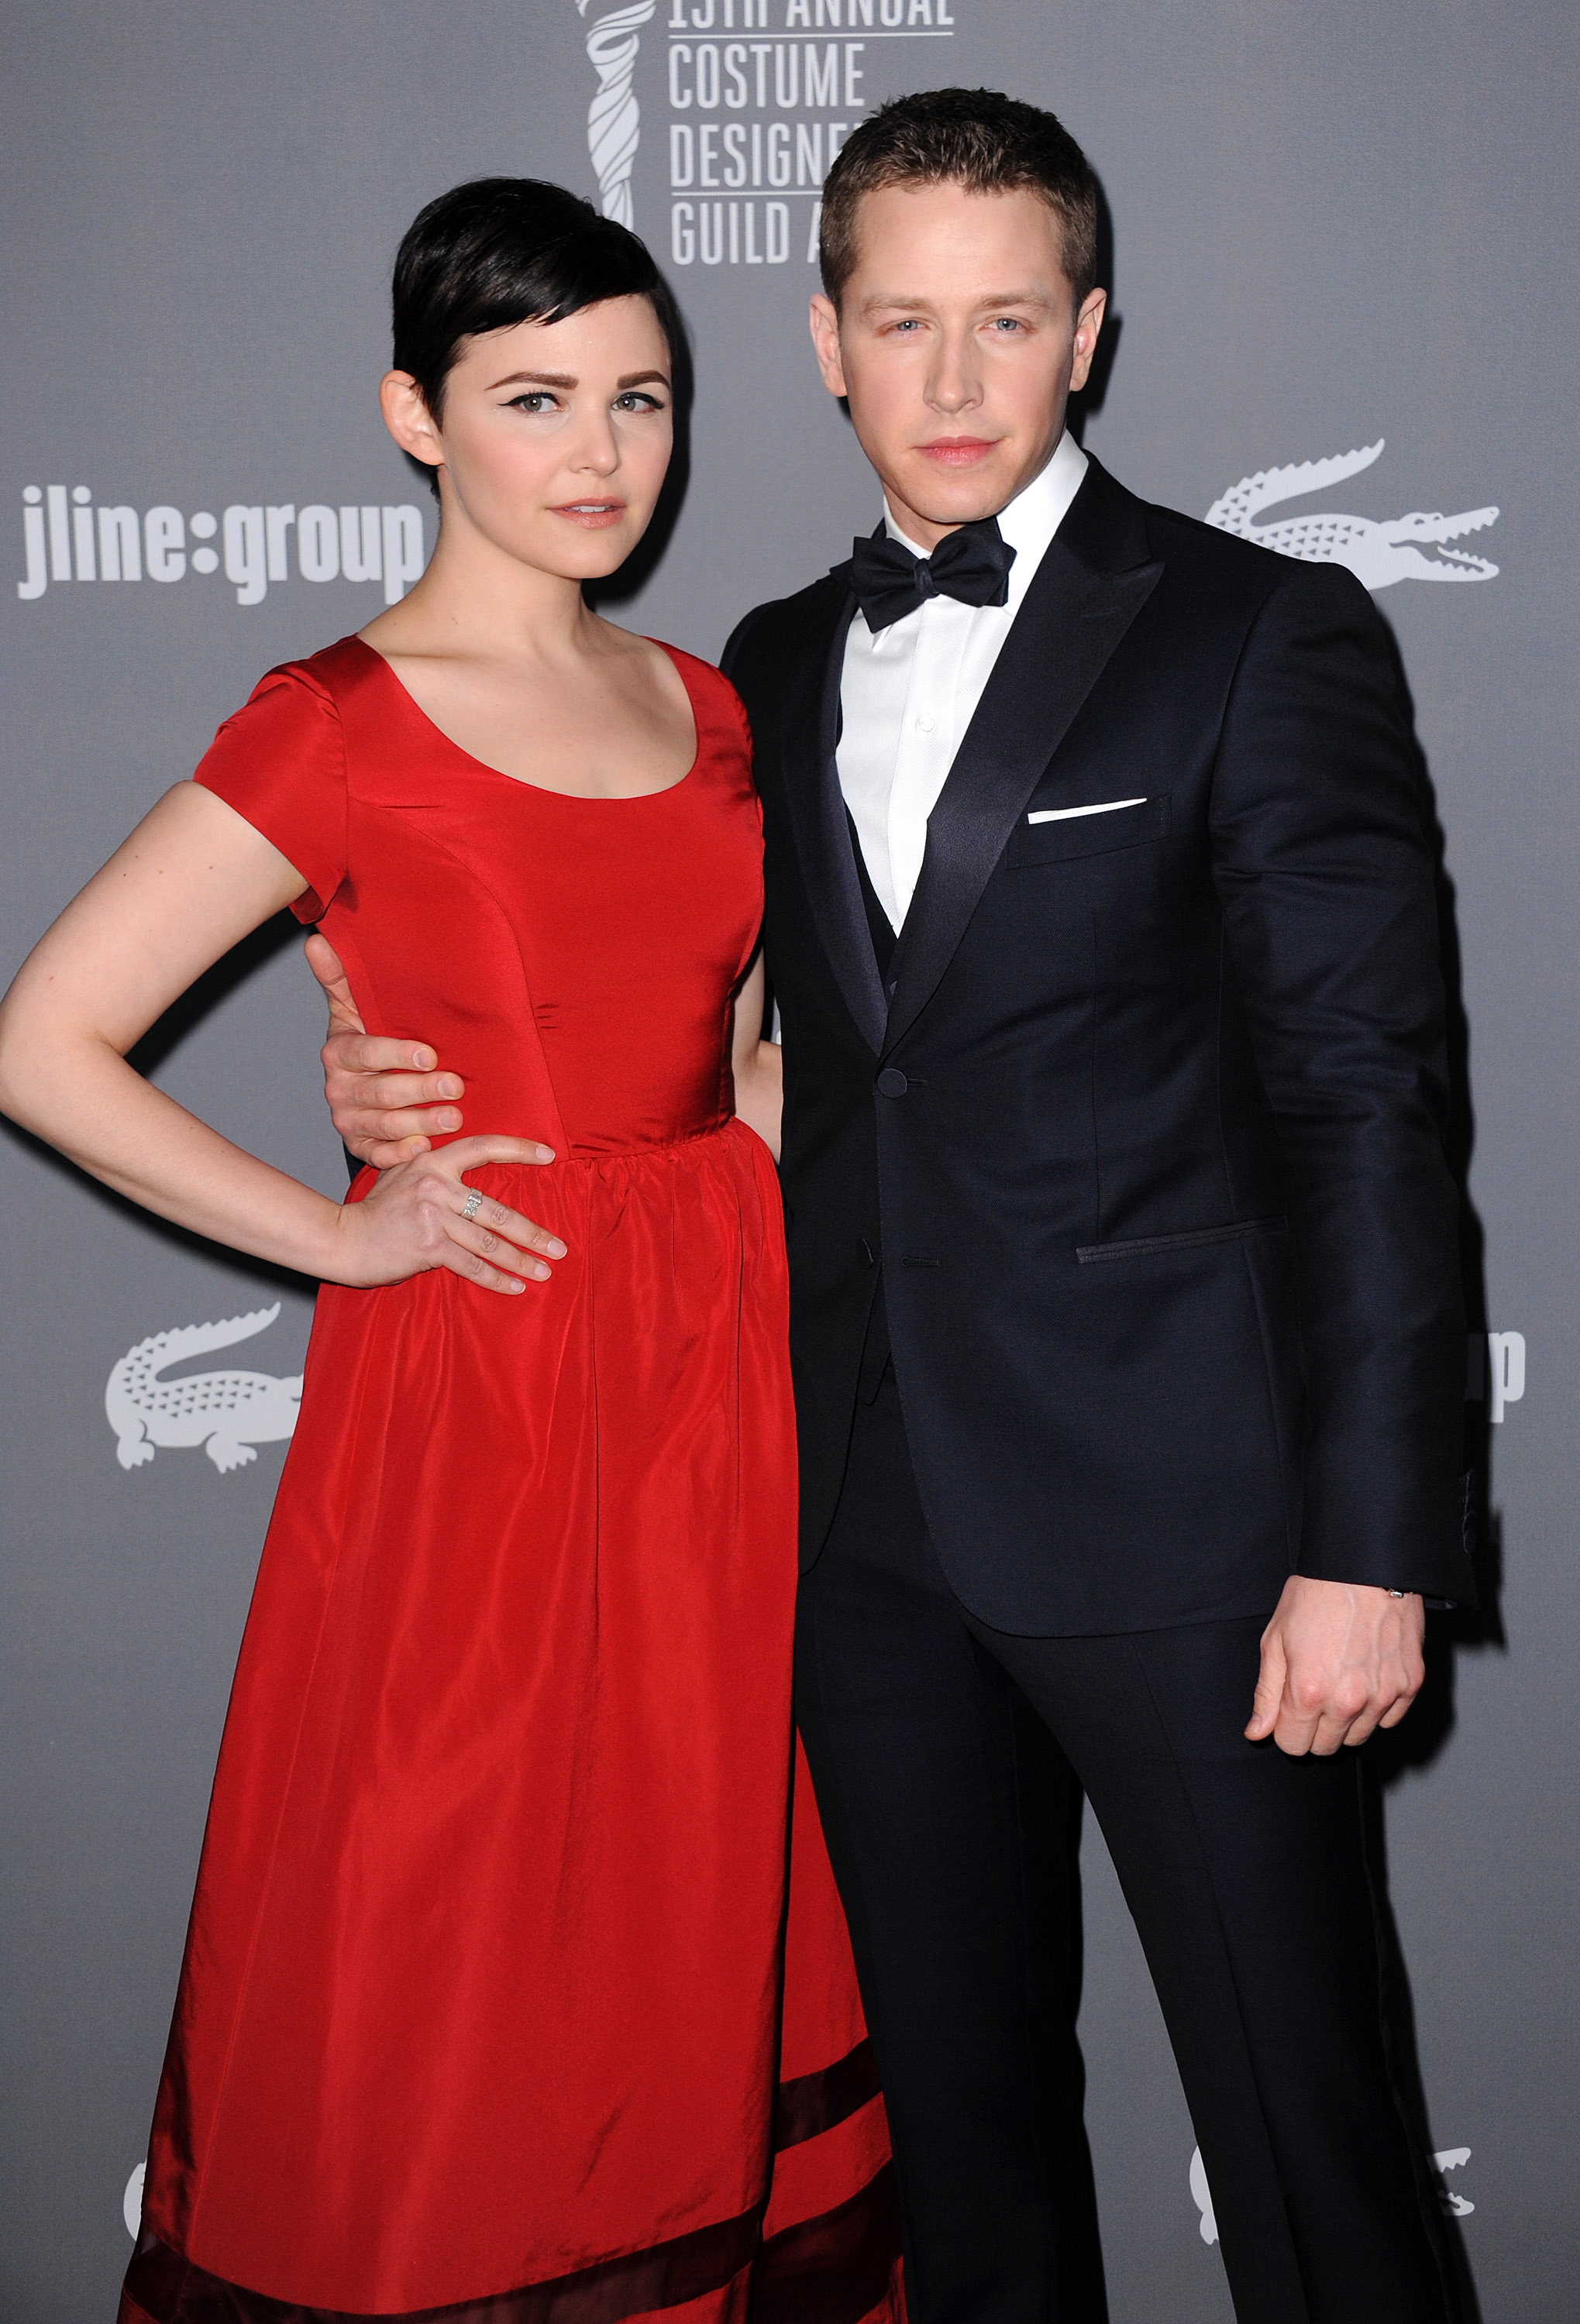 """Ginnifer Goodwin and Josh Dallas, who play Snow White and Prince Charming on """"Once Upon a Time,"""" are engaged."""